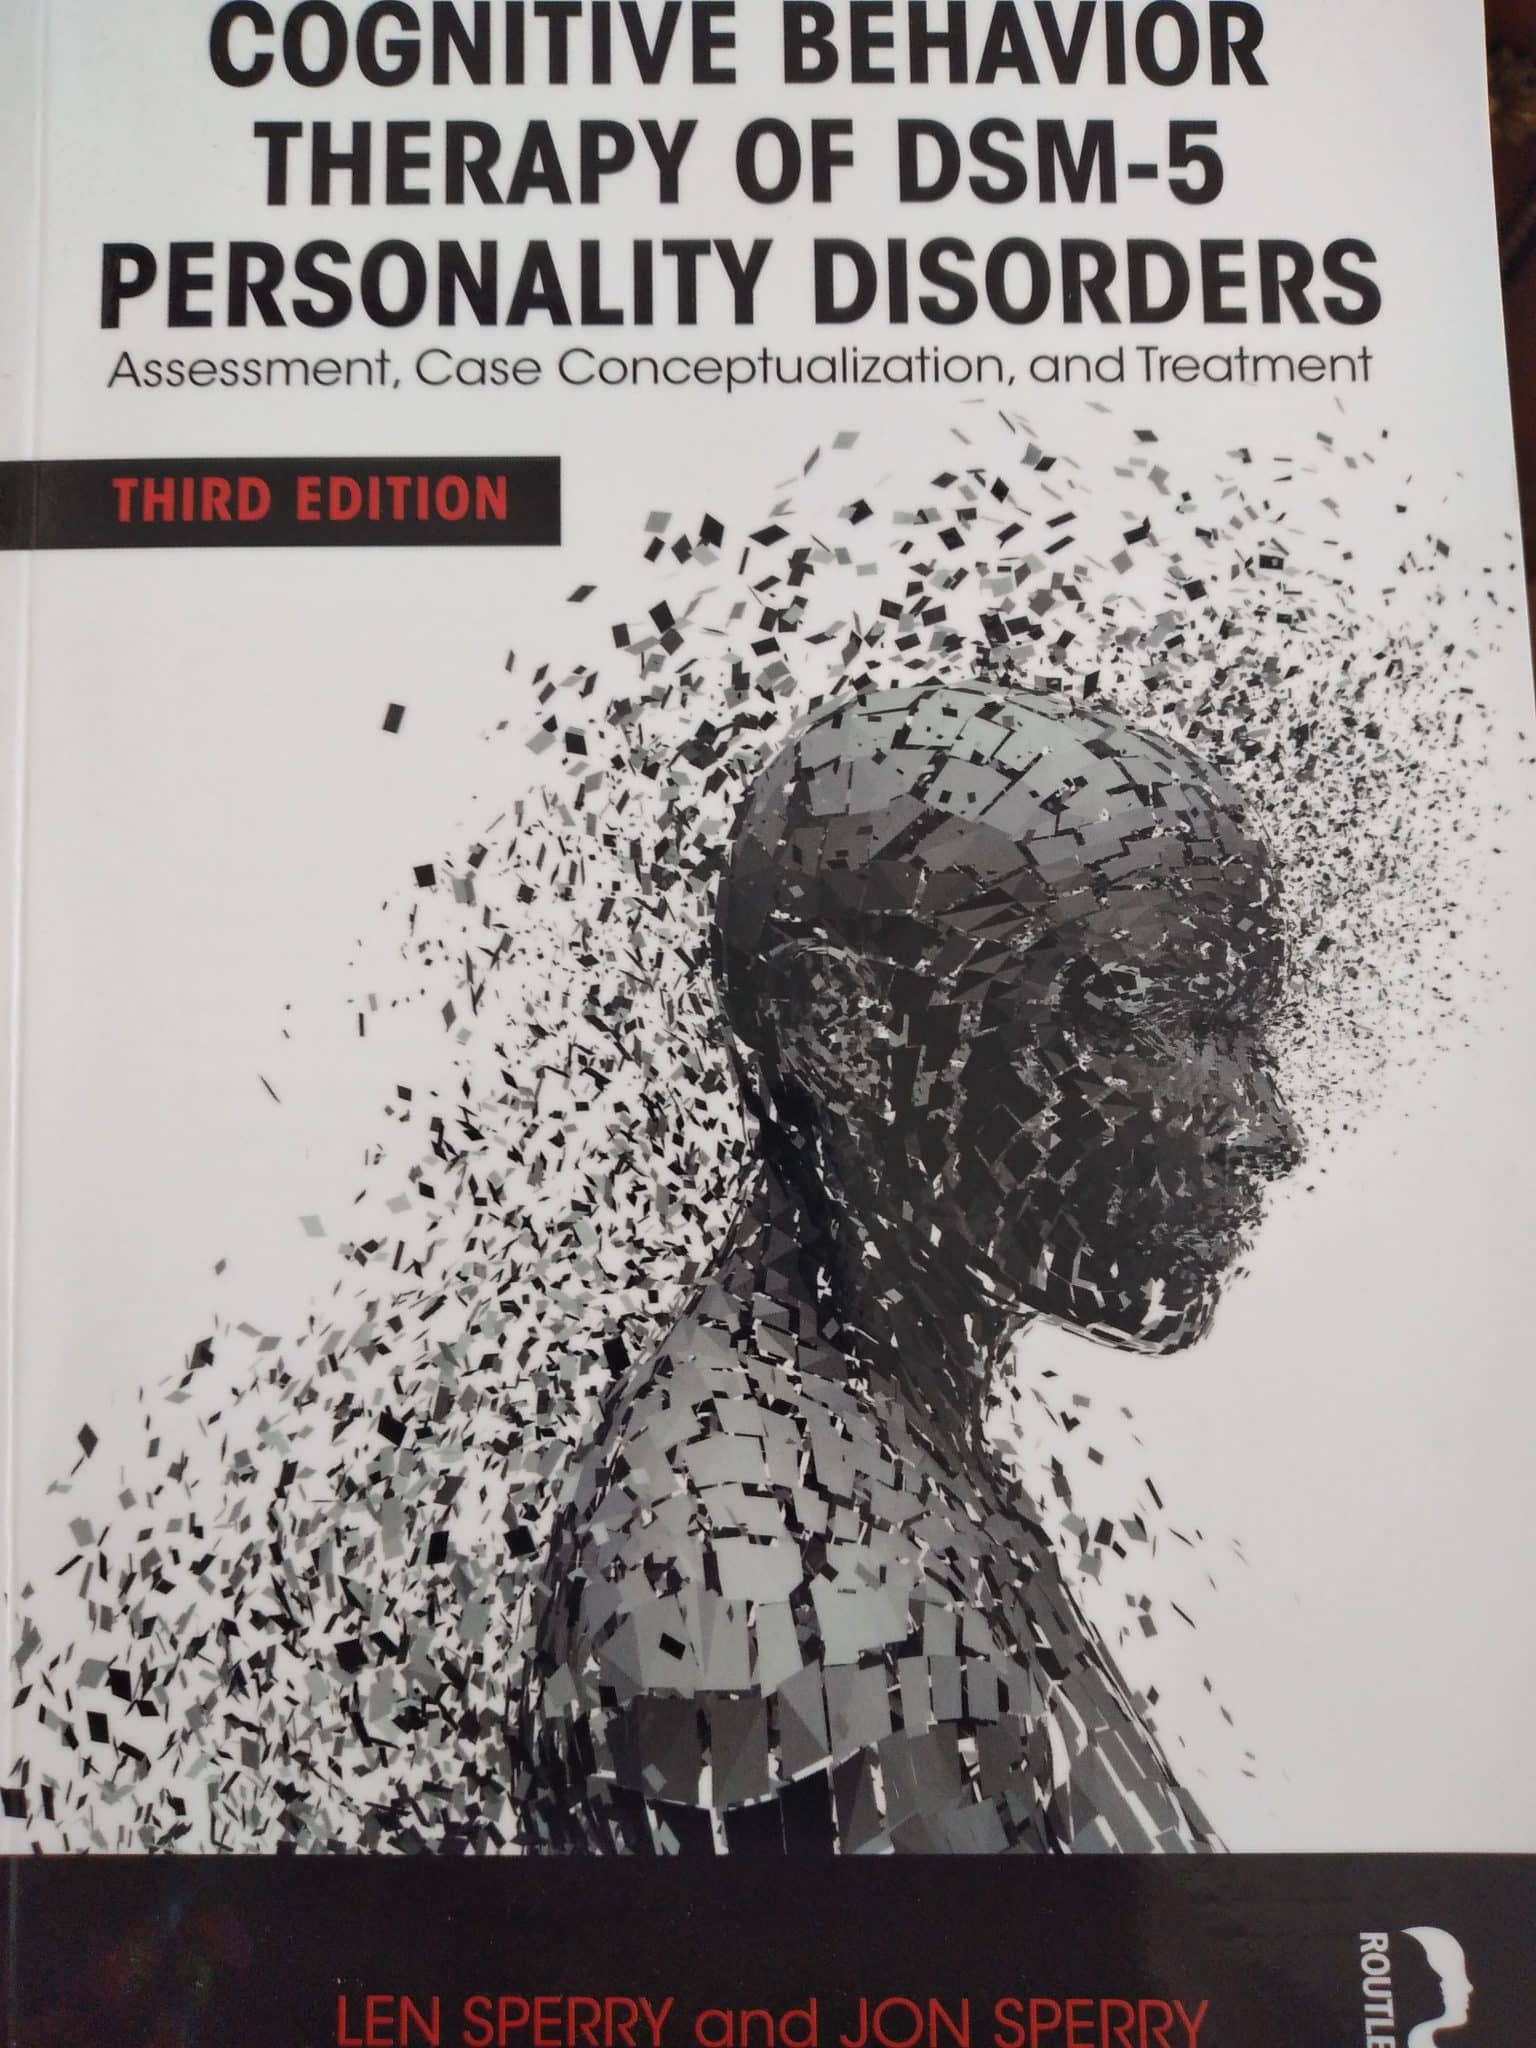 Cognitive Behavior Therapy Of DSM-5 Personality Disorders. Assessment, Case Conceptualization, And Treatment